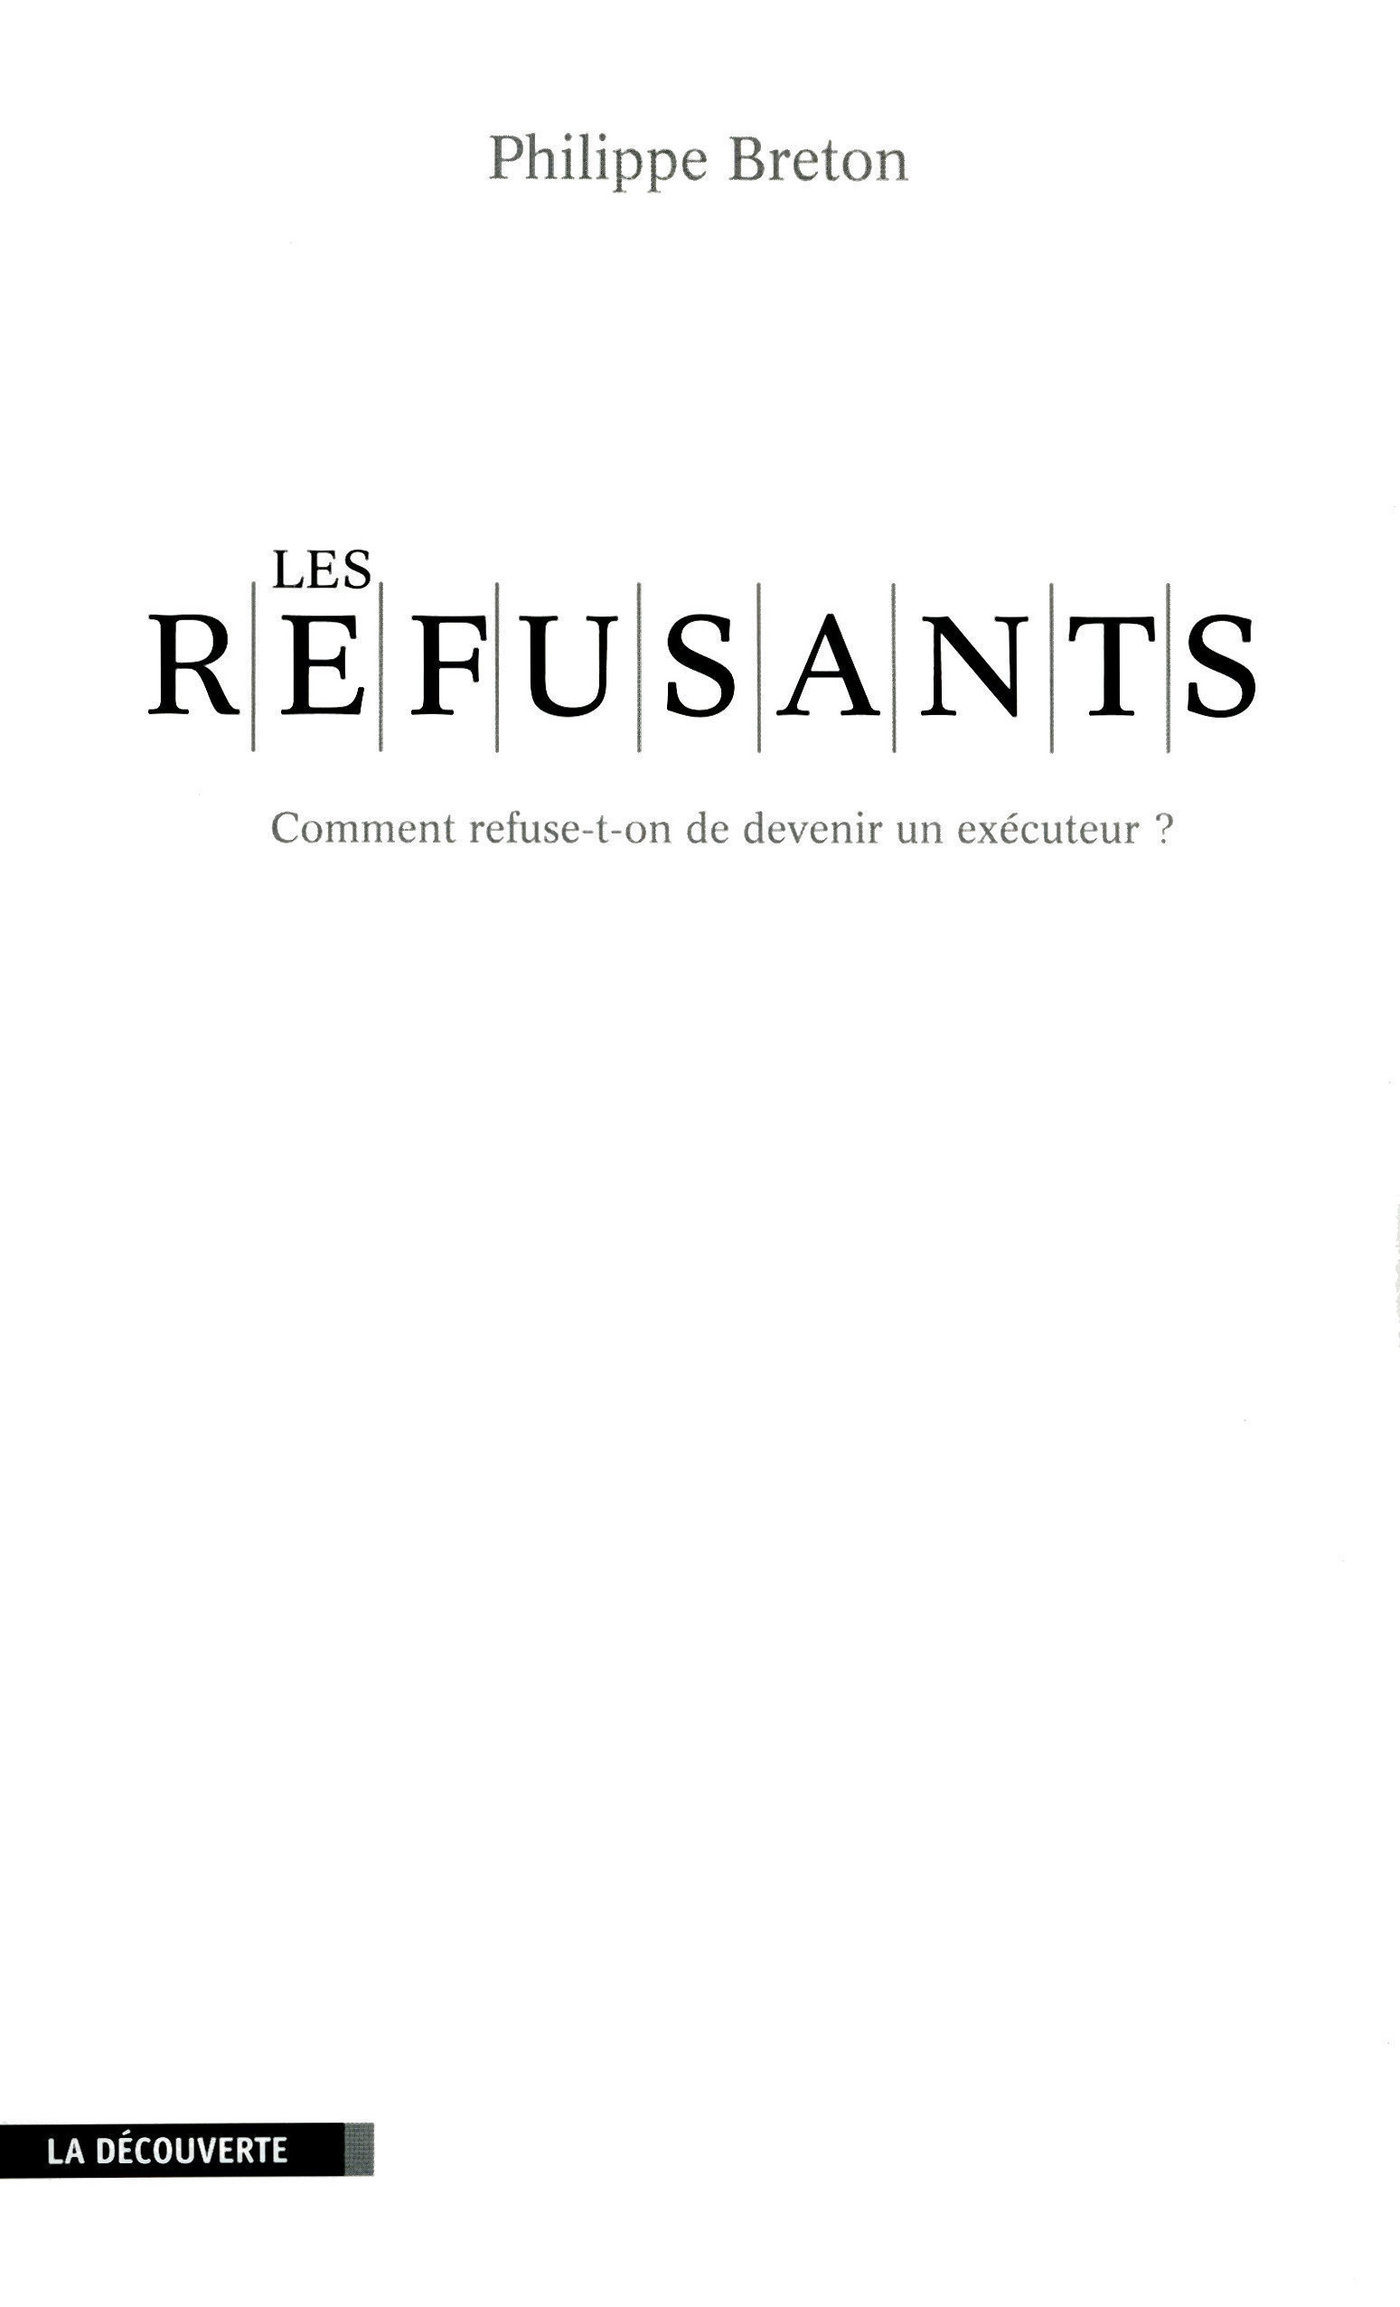 Les refusants (ebook)